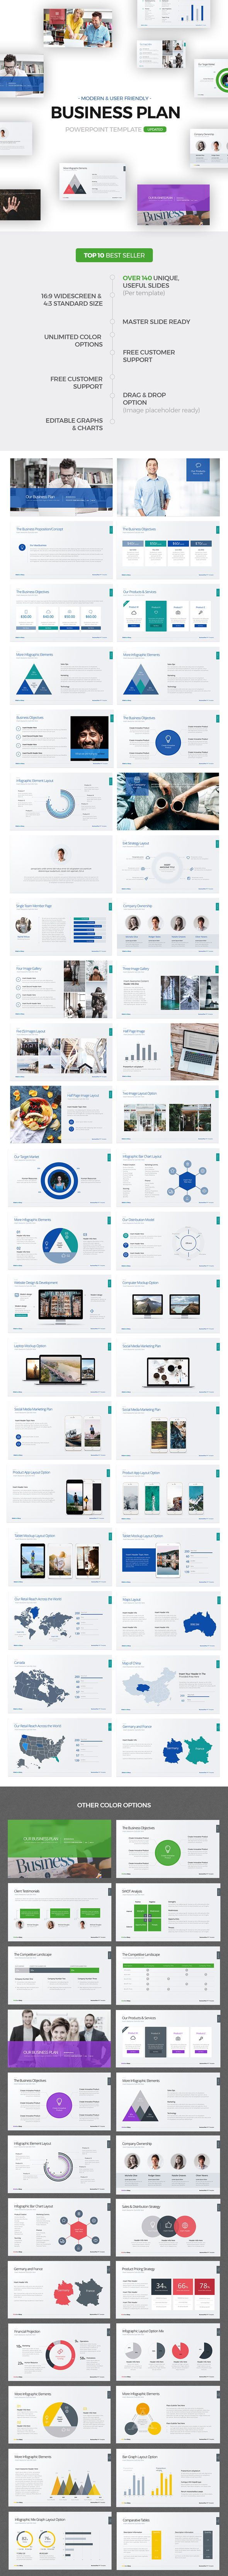 Business Plan Powerpoint  Element Chart Cleaning Companies And